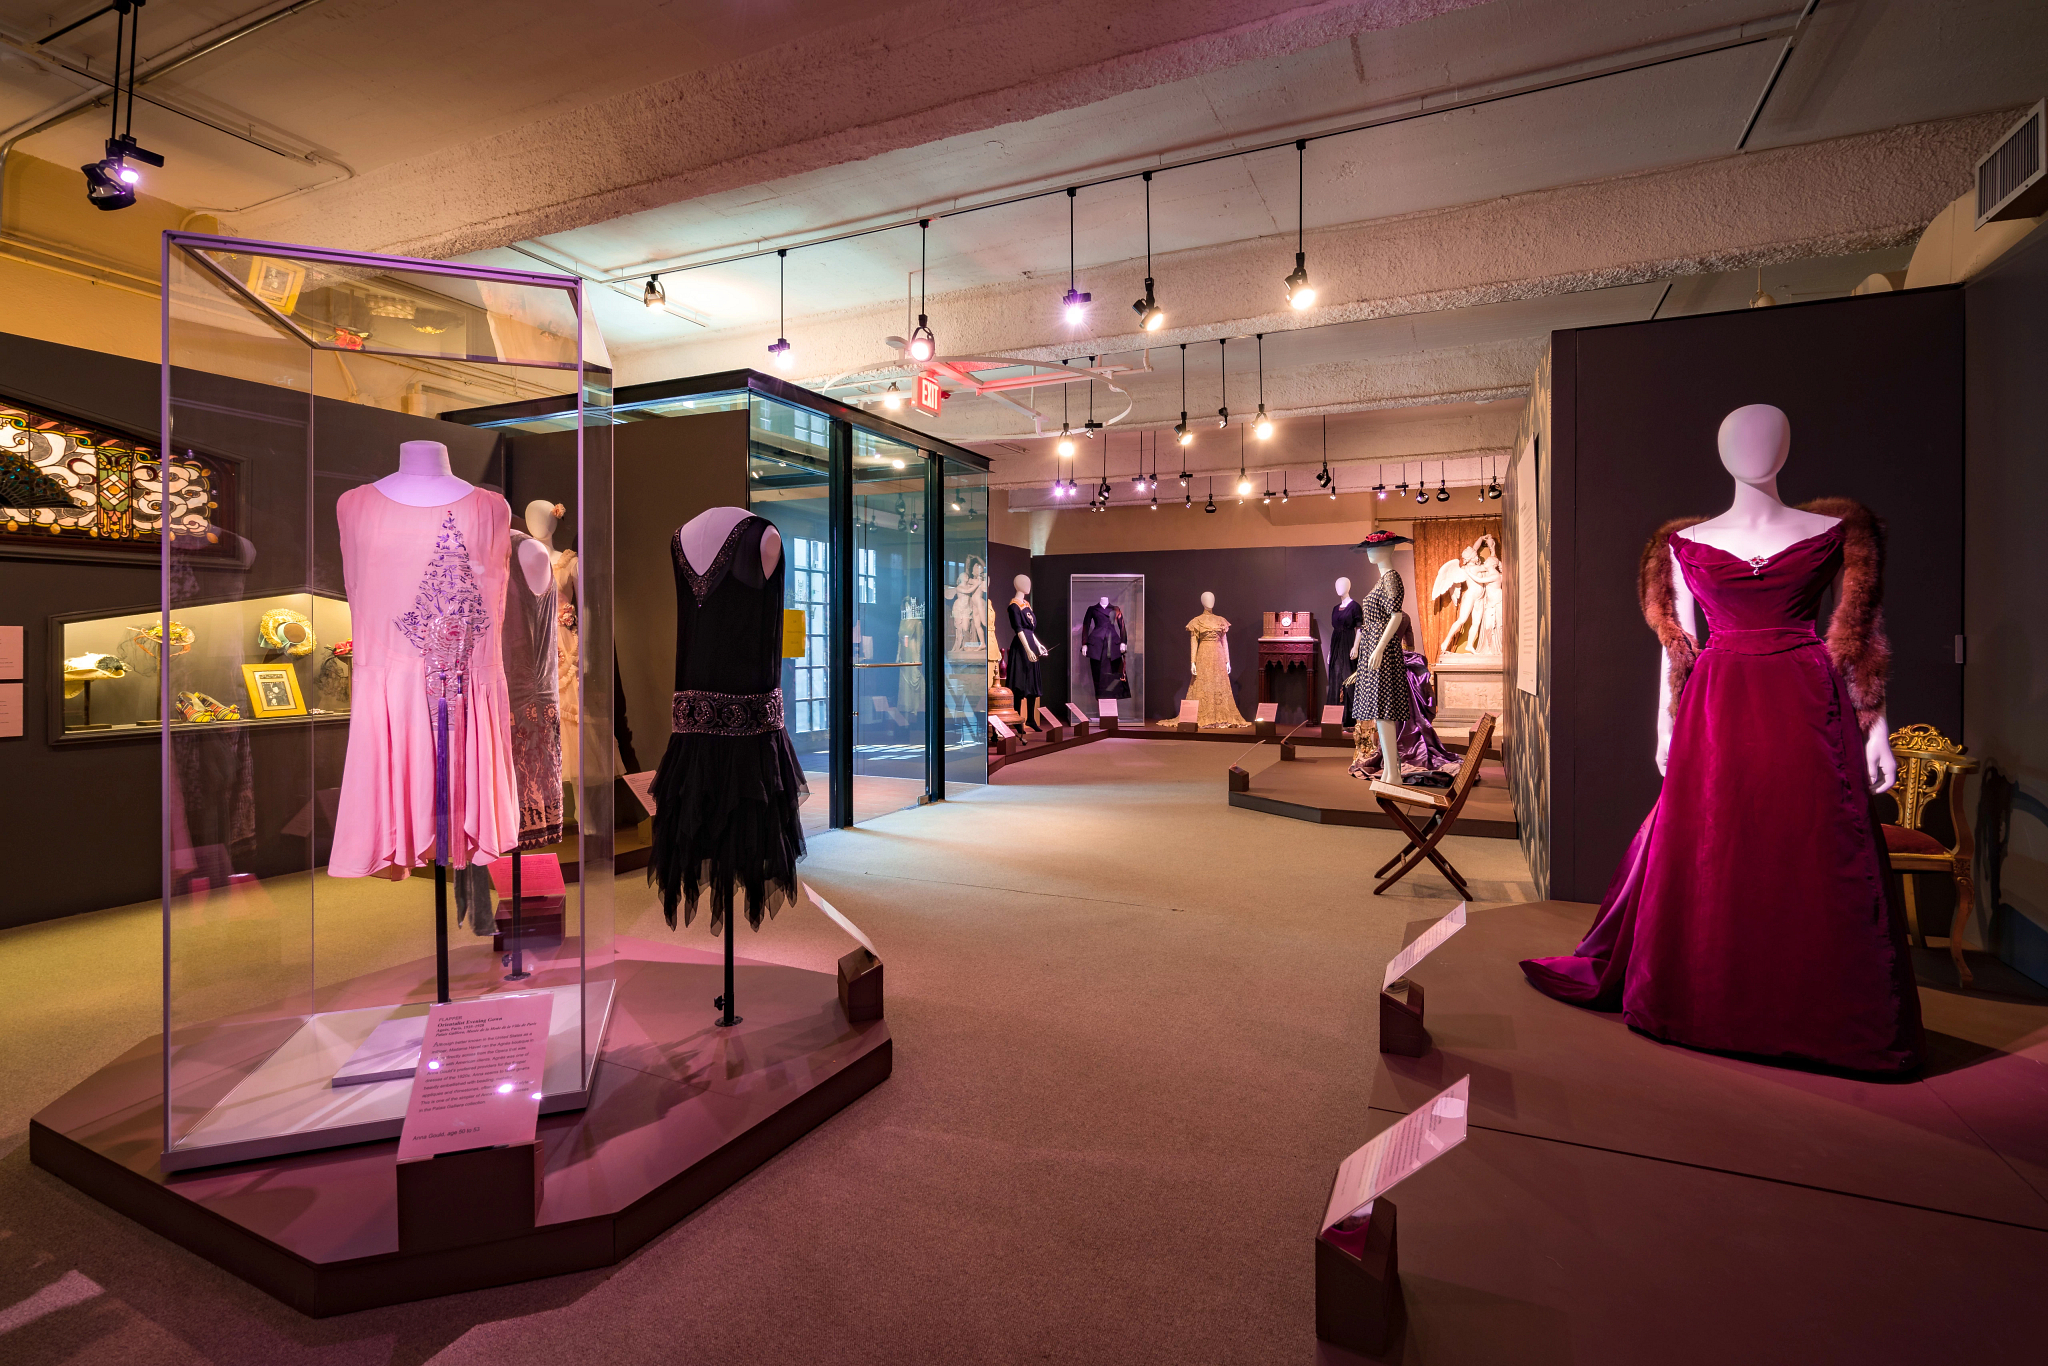 Frank System Showcasing Fashion Exhibit